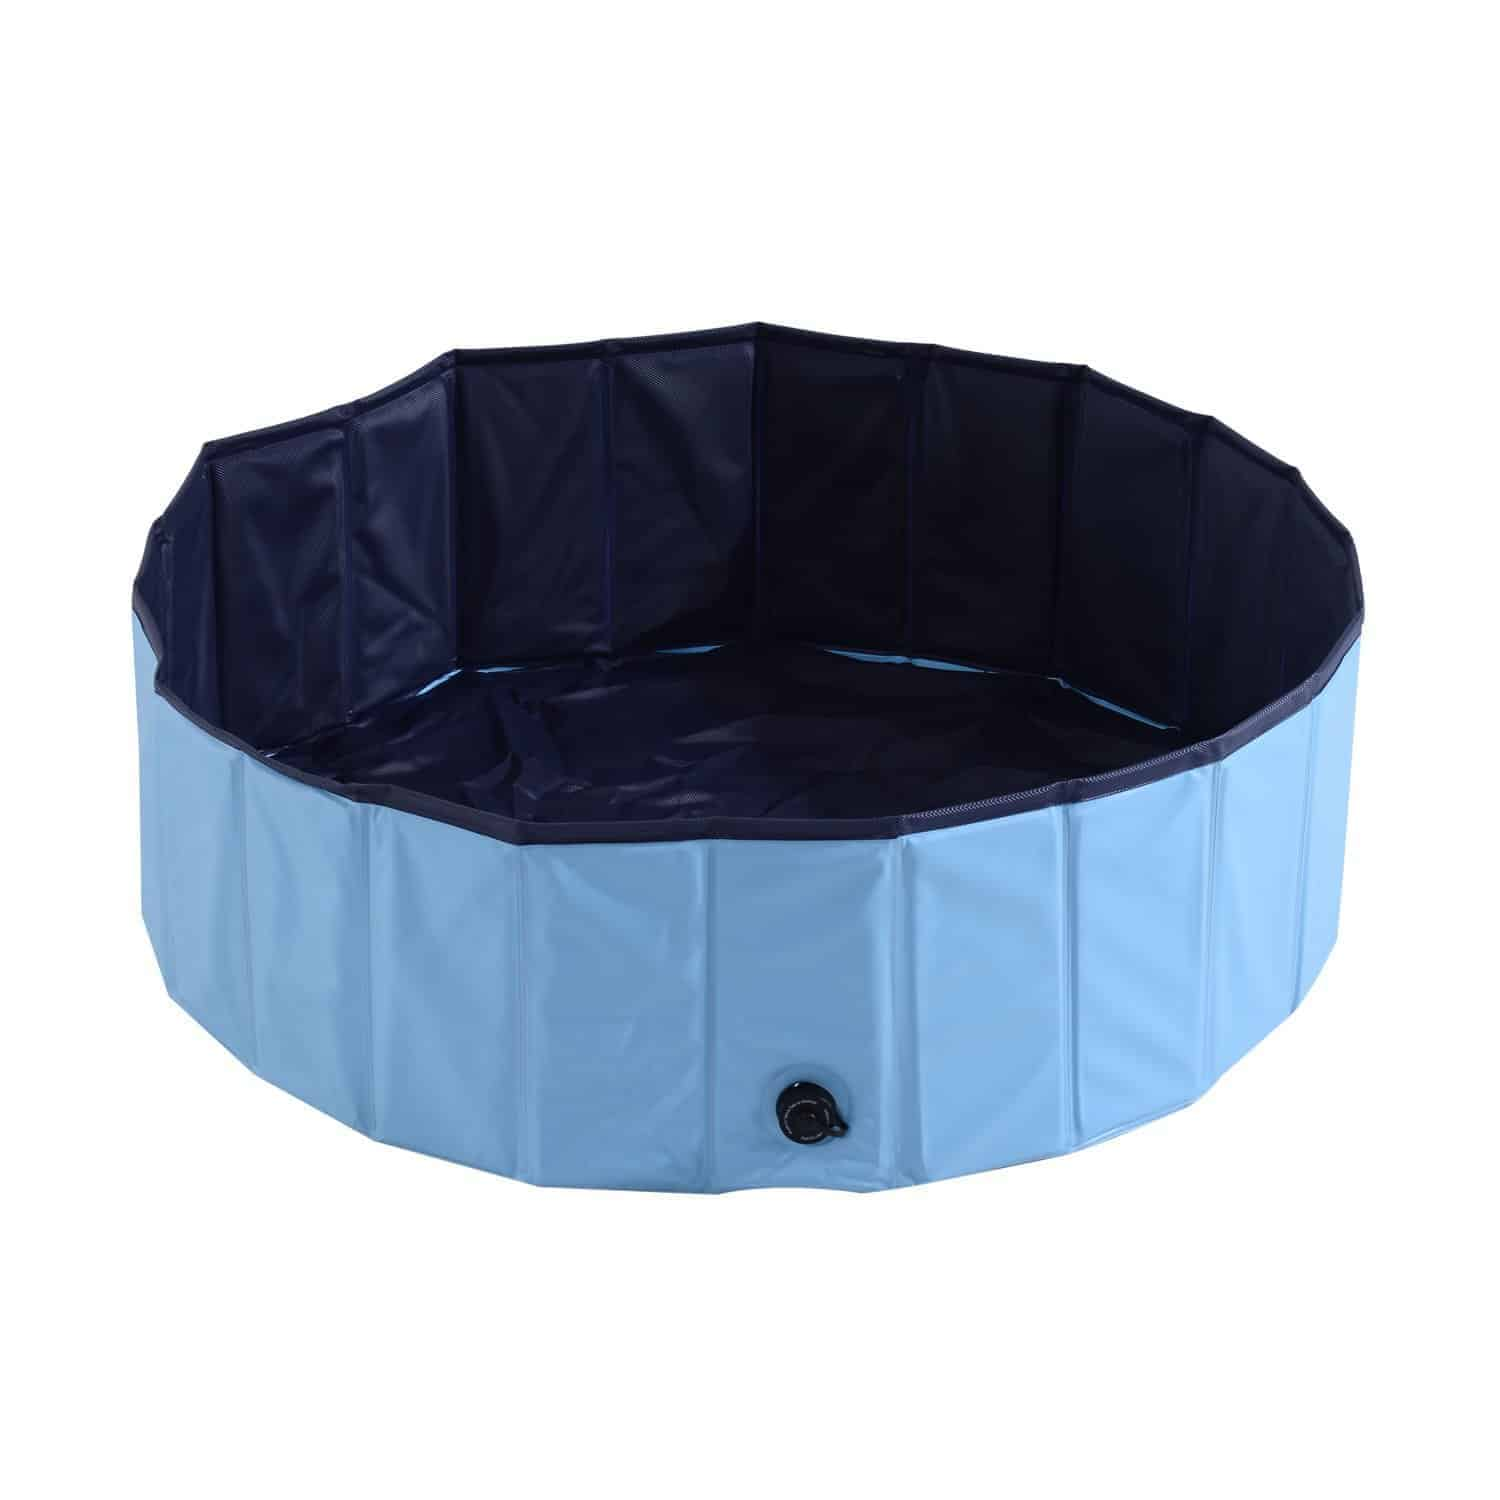 Best Dog Tub UK – Paw Hut